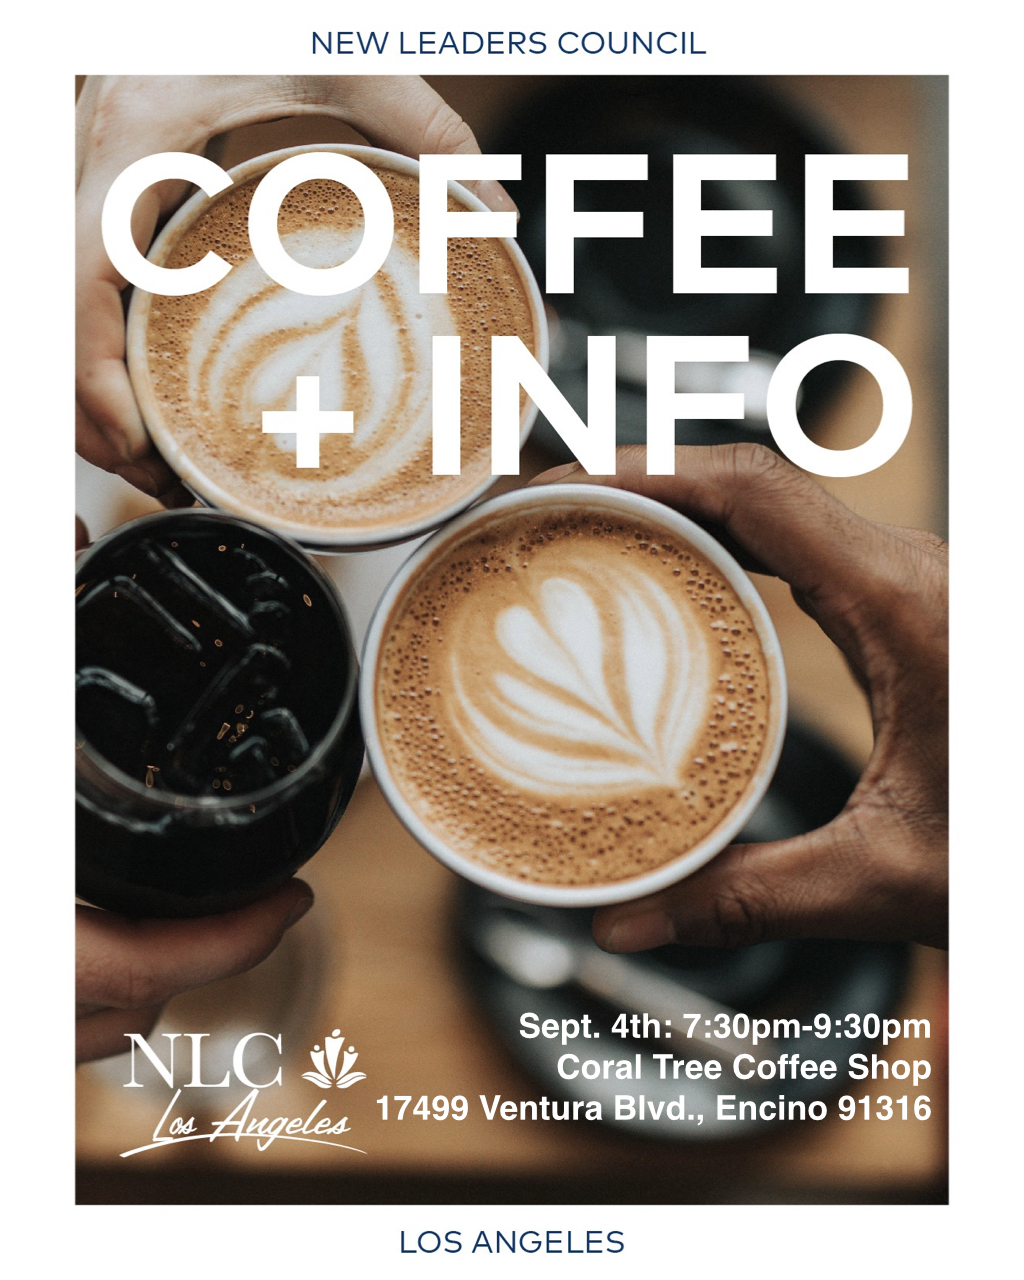 NLC_Coffee_Encino_version.001.jpeg